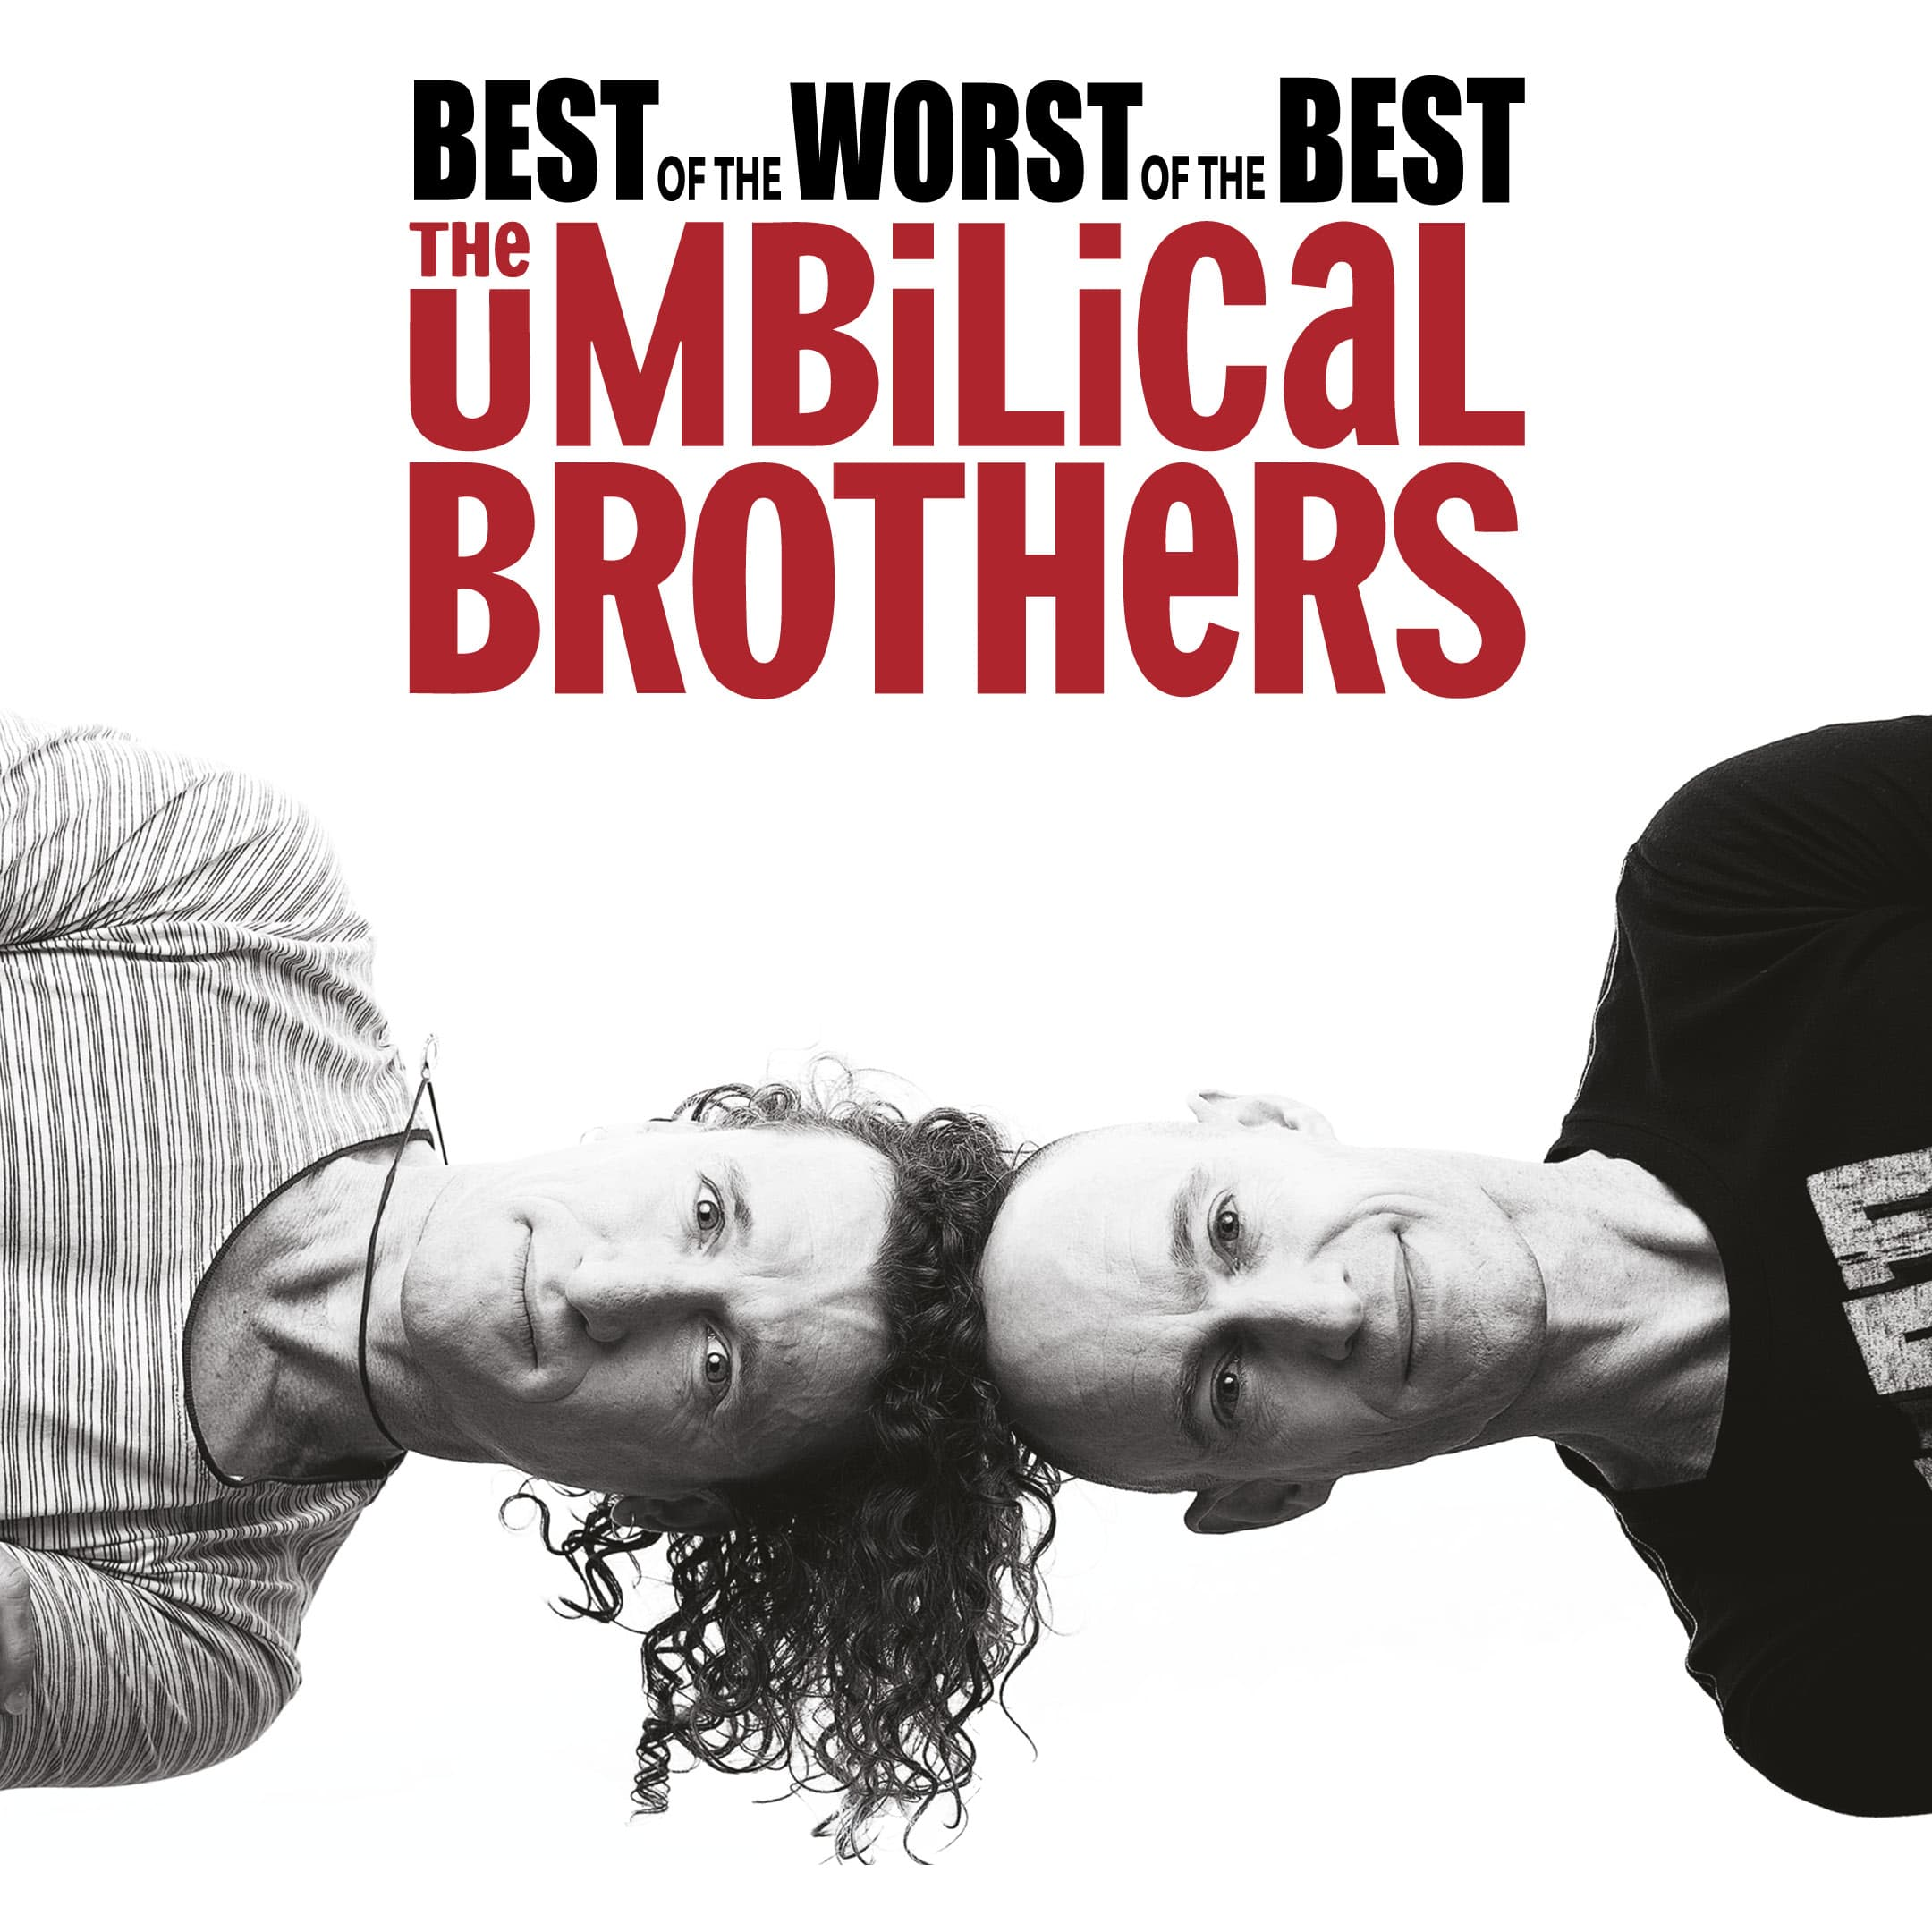 Umbilical Brothers